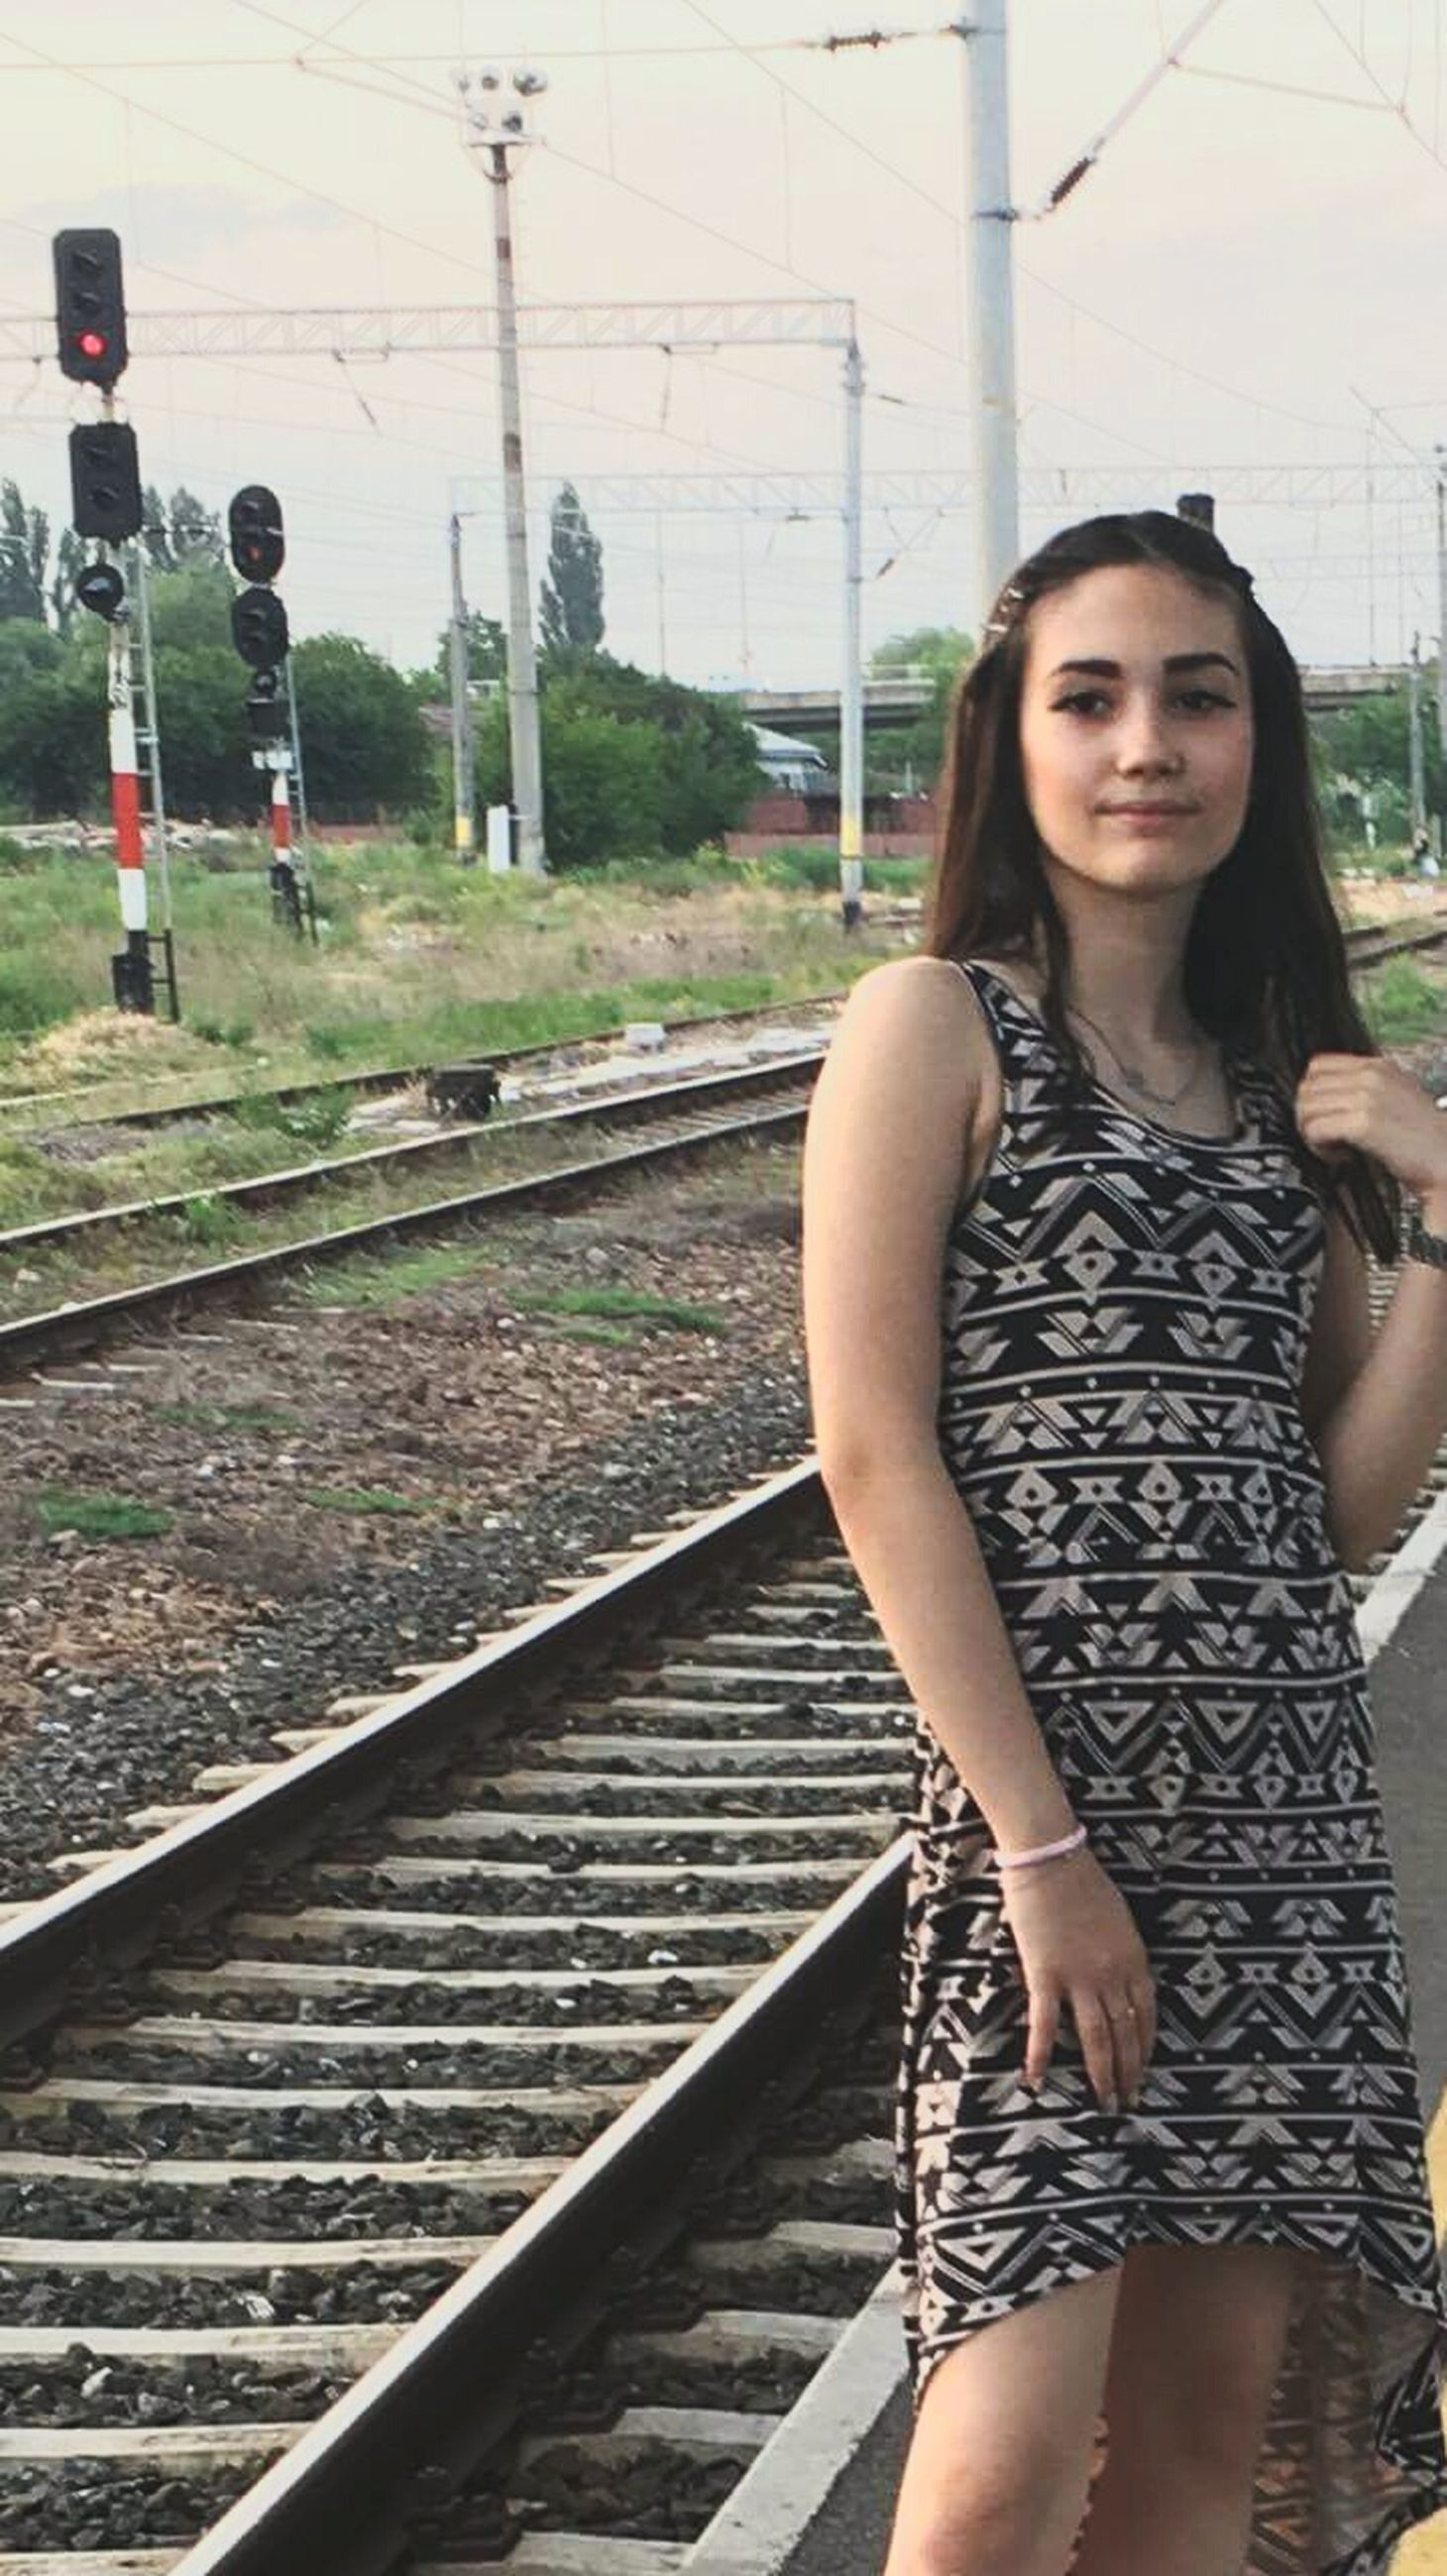 railroad track, one person, rail transportation, transportation, young adult, real people, young women, day, portrait, looking at camera, outdoors